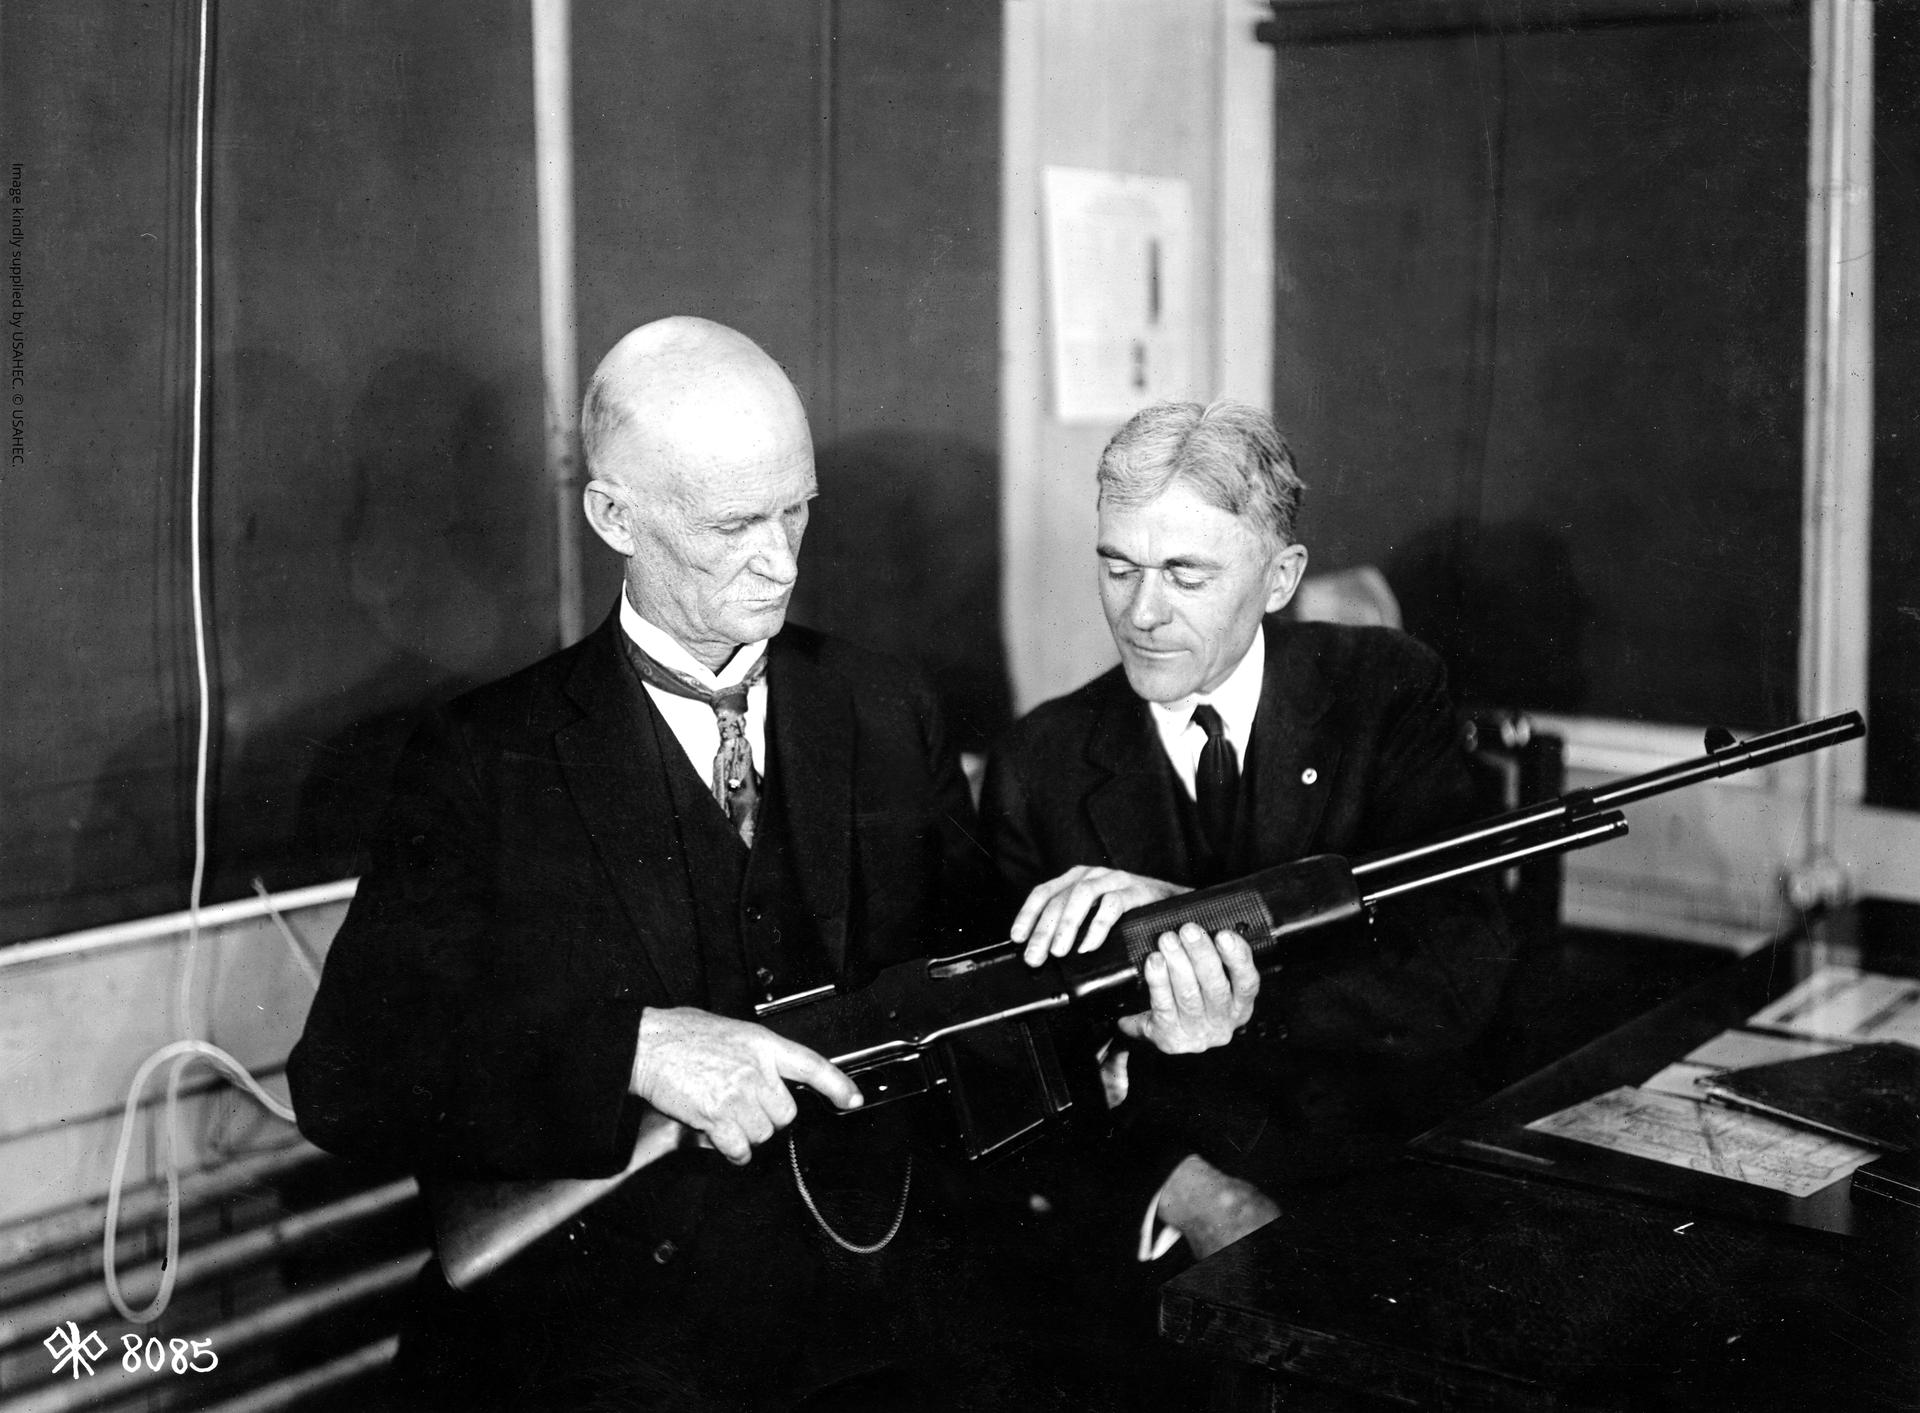 Photograph showing inventor John Browning and Mr. Burton, the Winchester expert on rifles, discussing the fine points of the Browning Light Gun at the Winchester Plant (WWI Signal Corps Photograph Collection (RG4) Box 214).